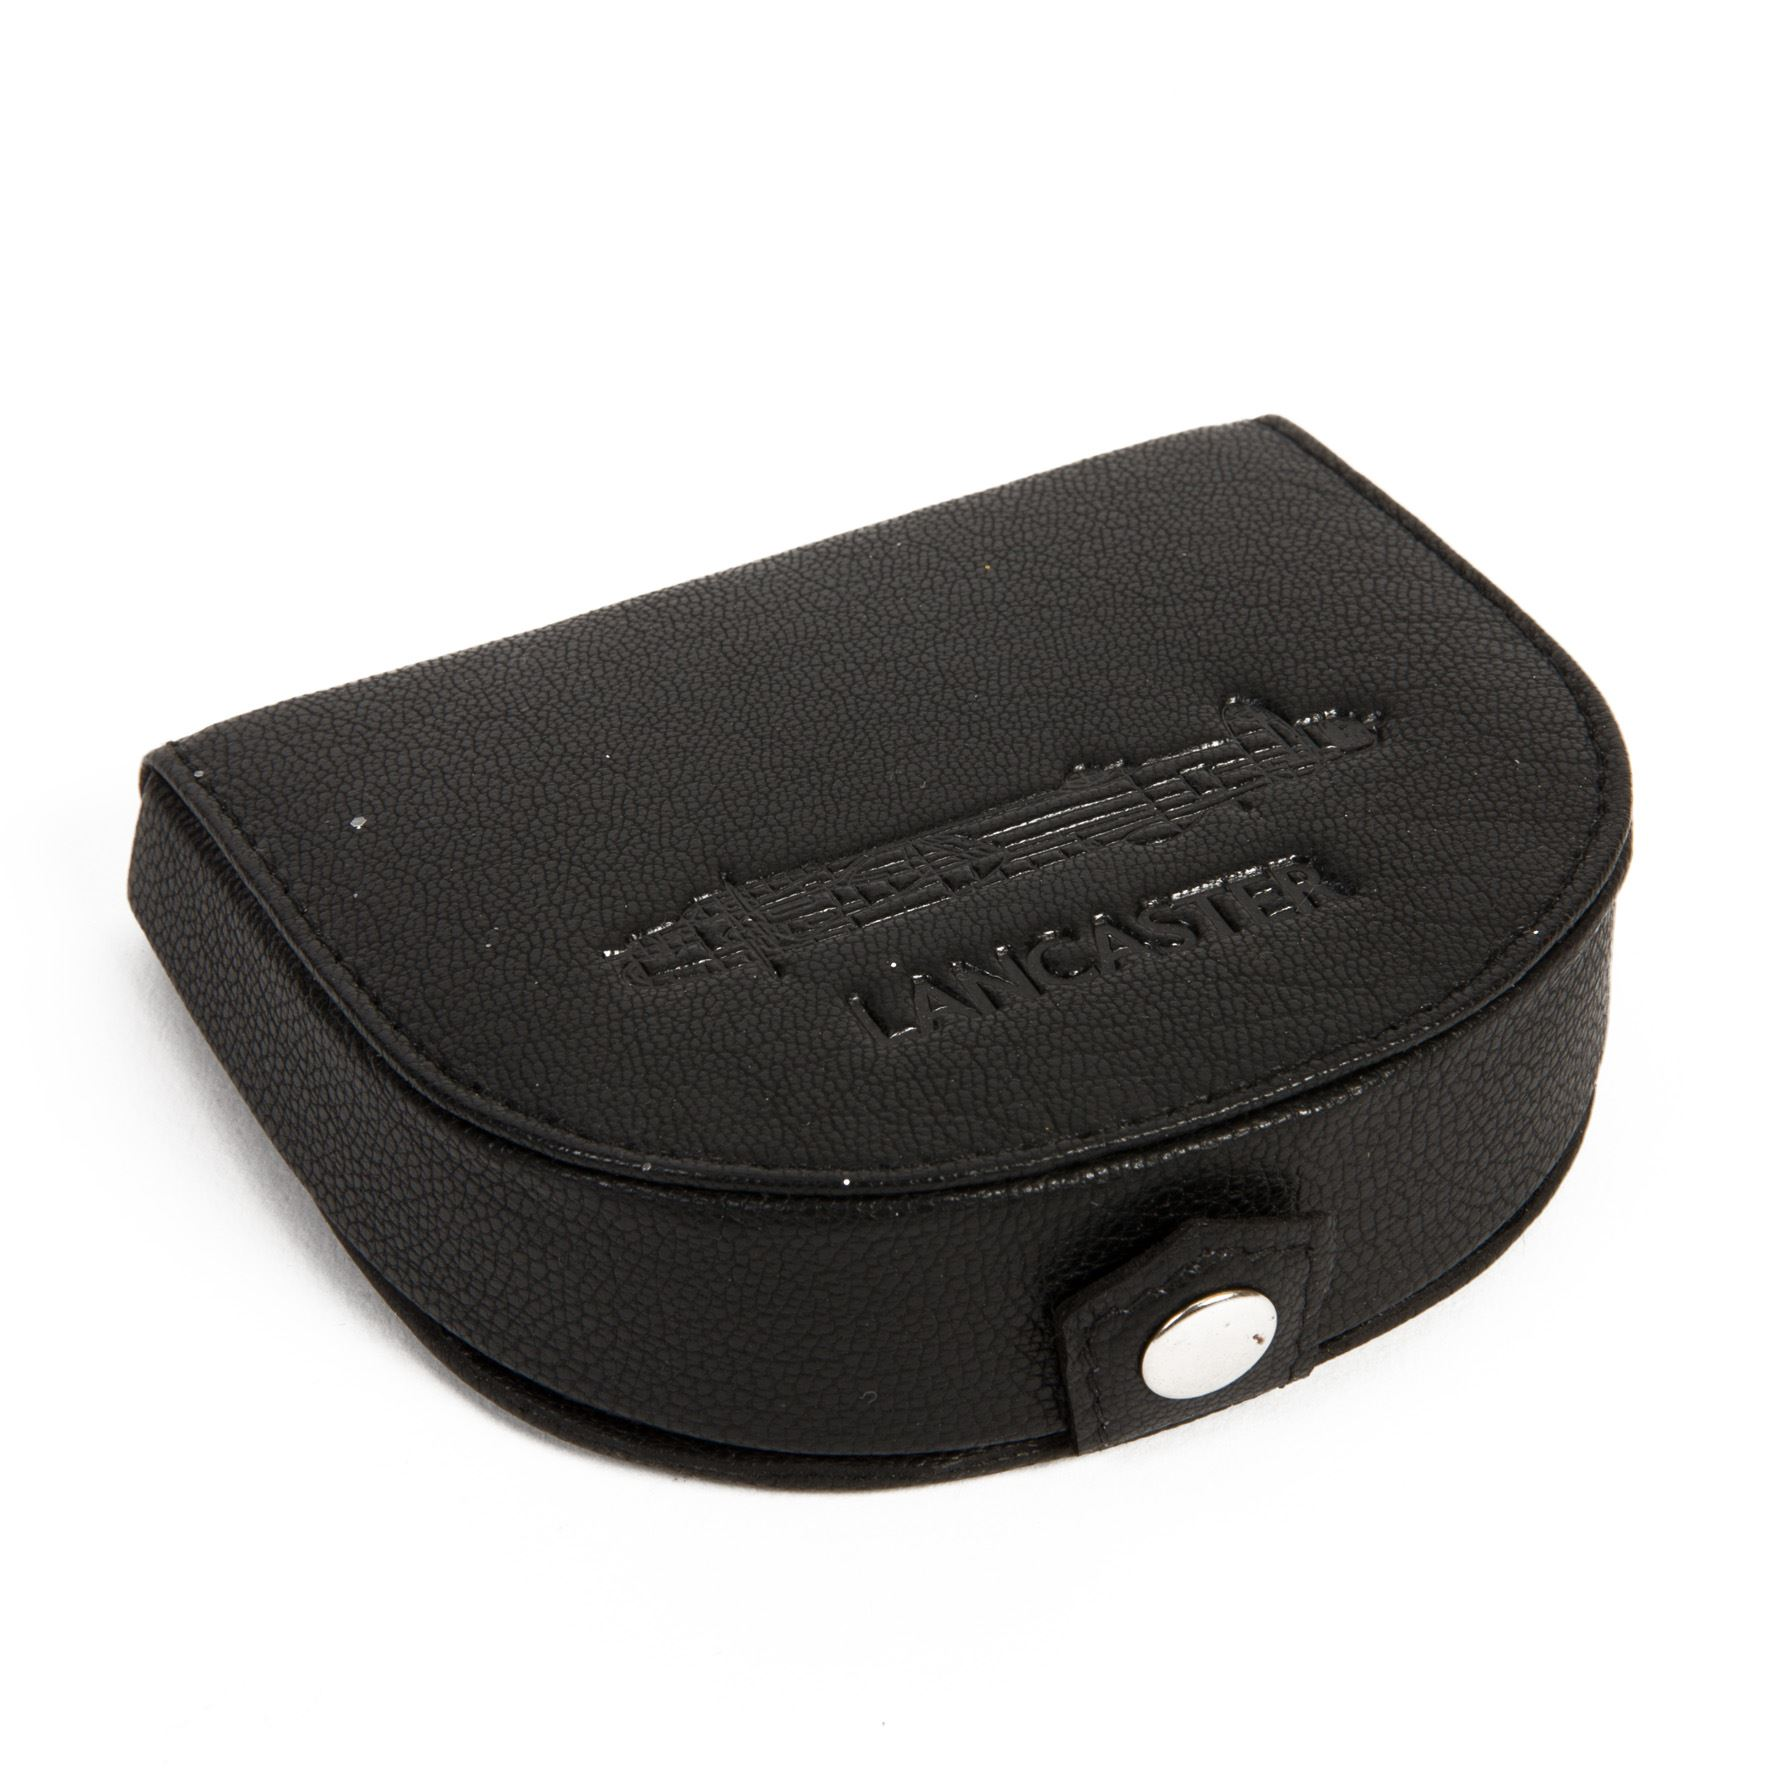 Military Heritage Leather Tray Purse - Lancaster